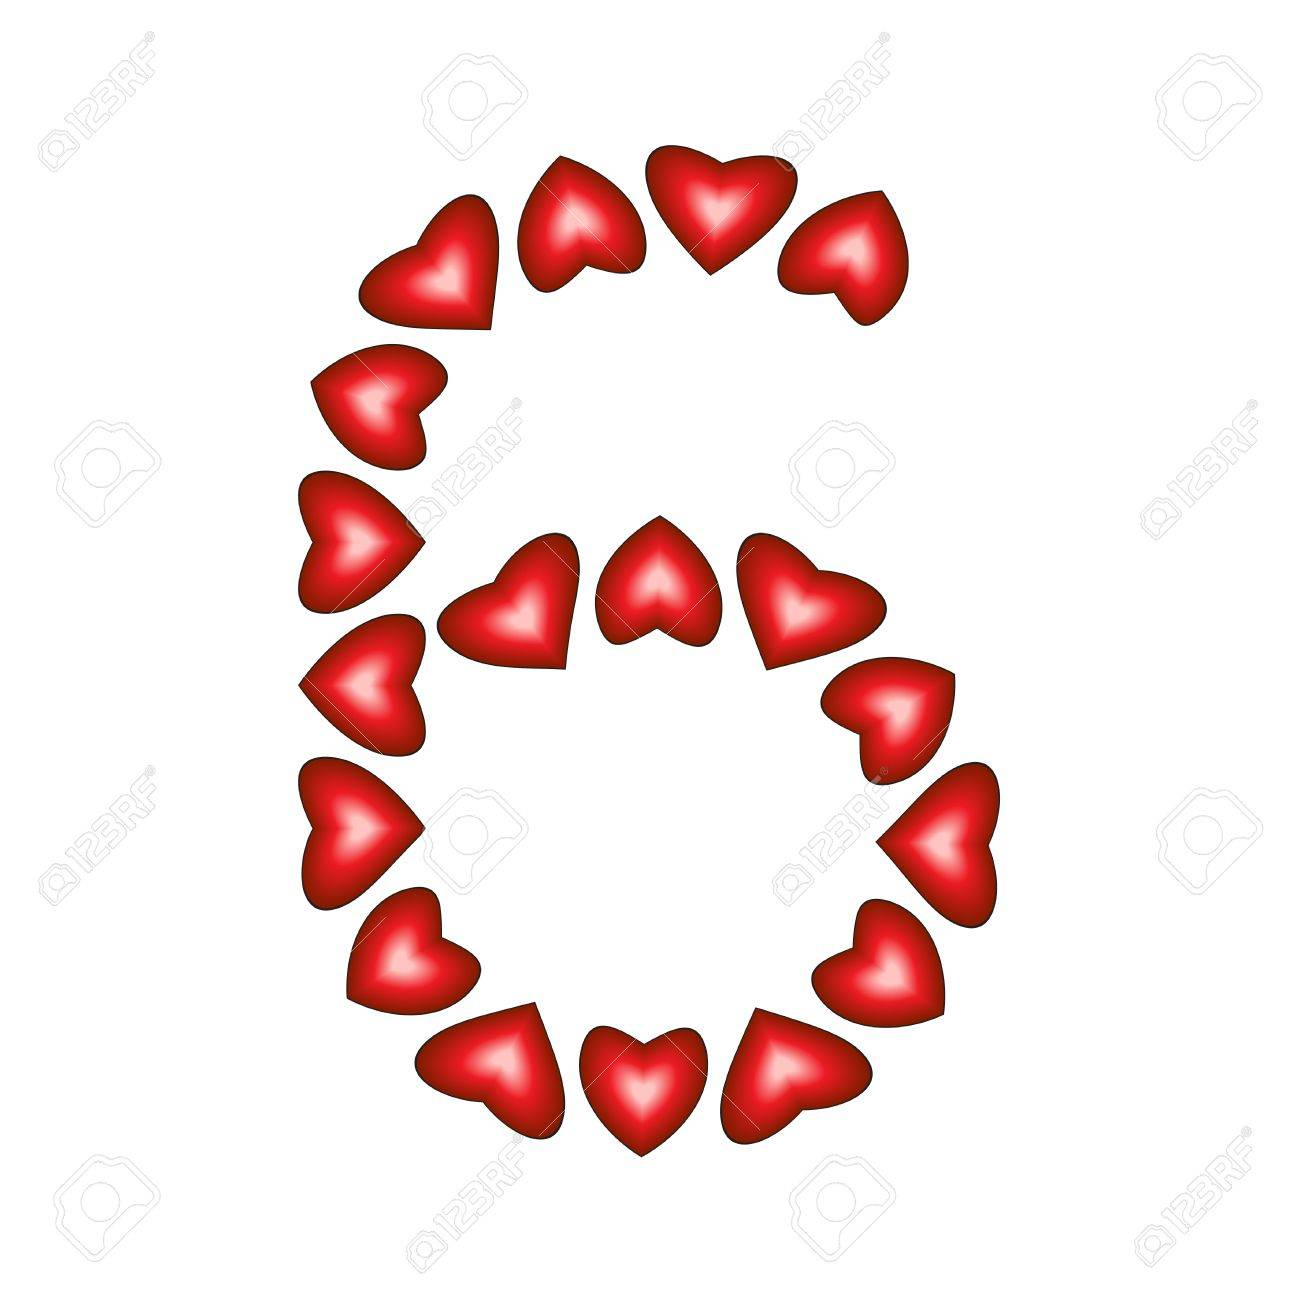 Number 6 made of hearts on white background Stock Vector - 15139217